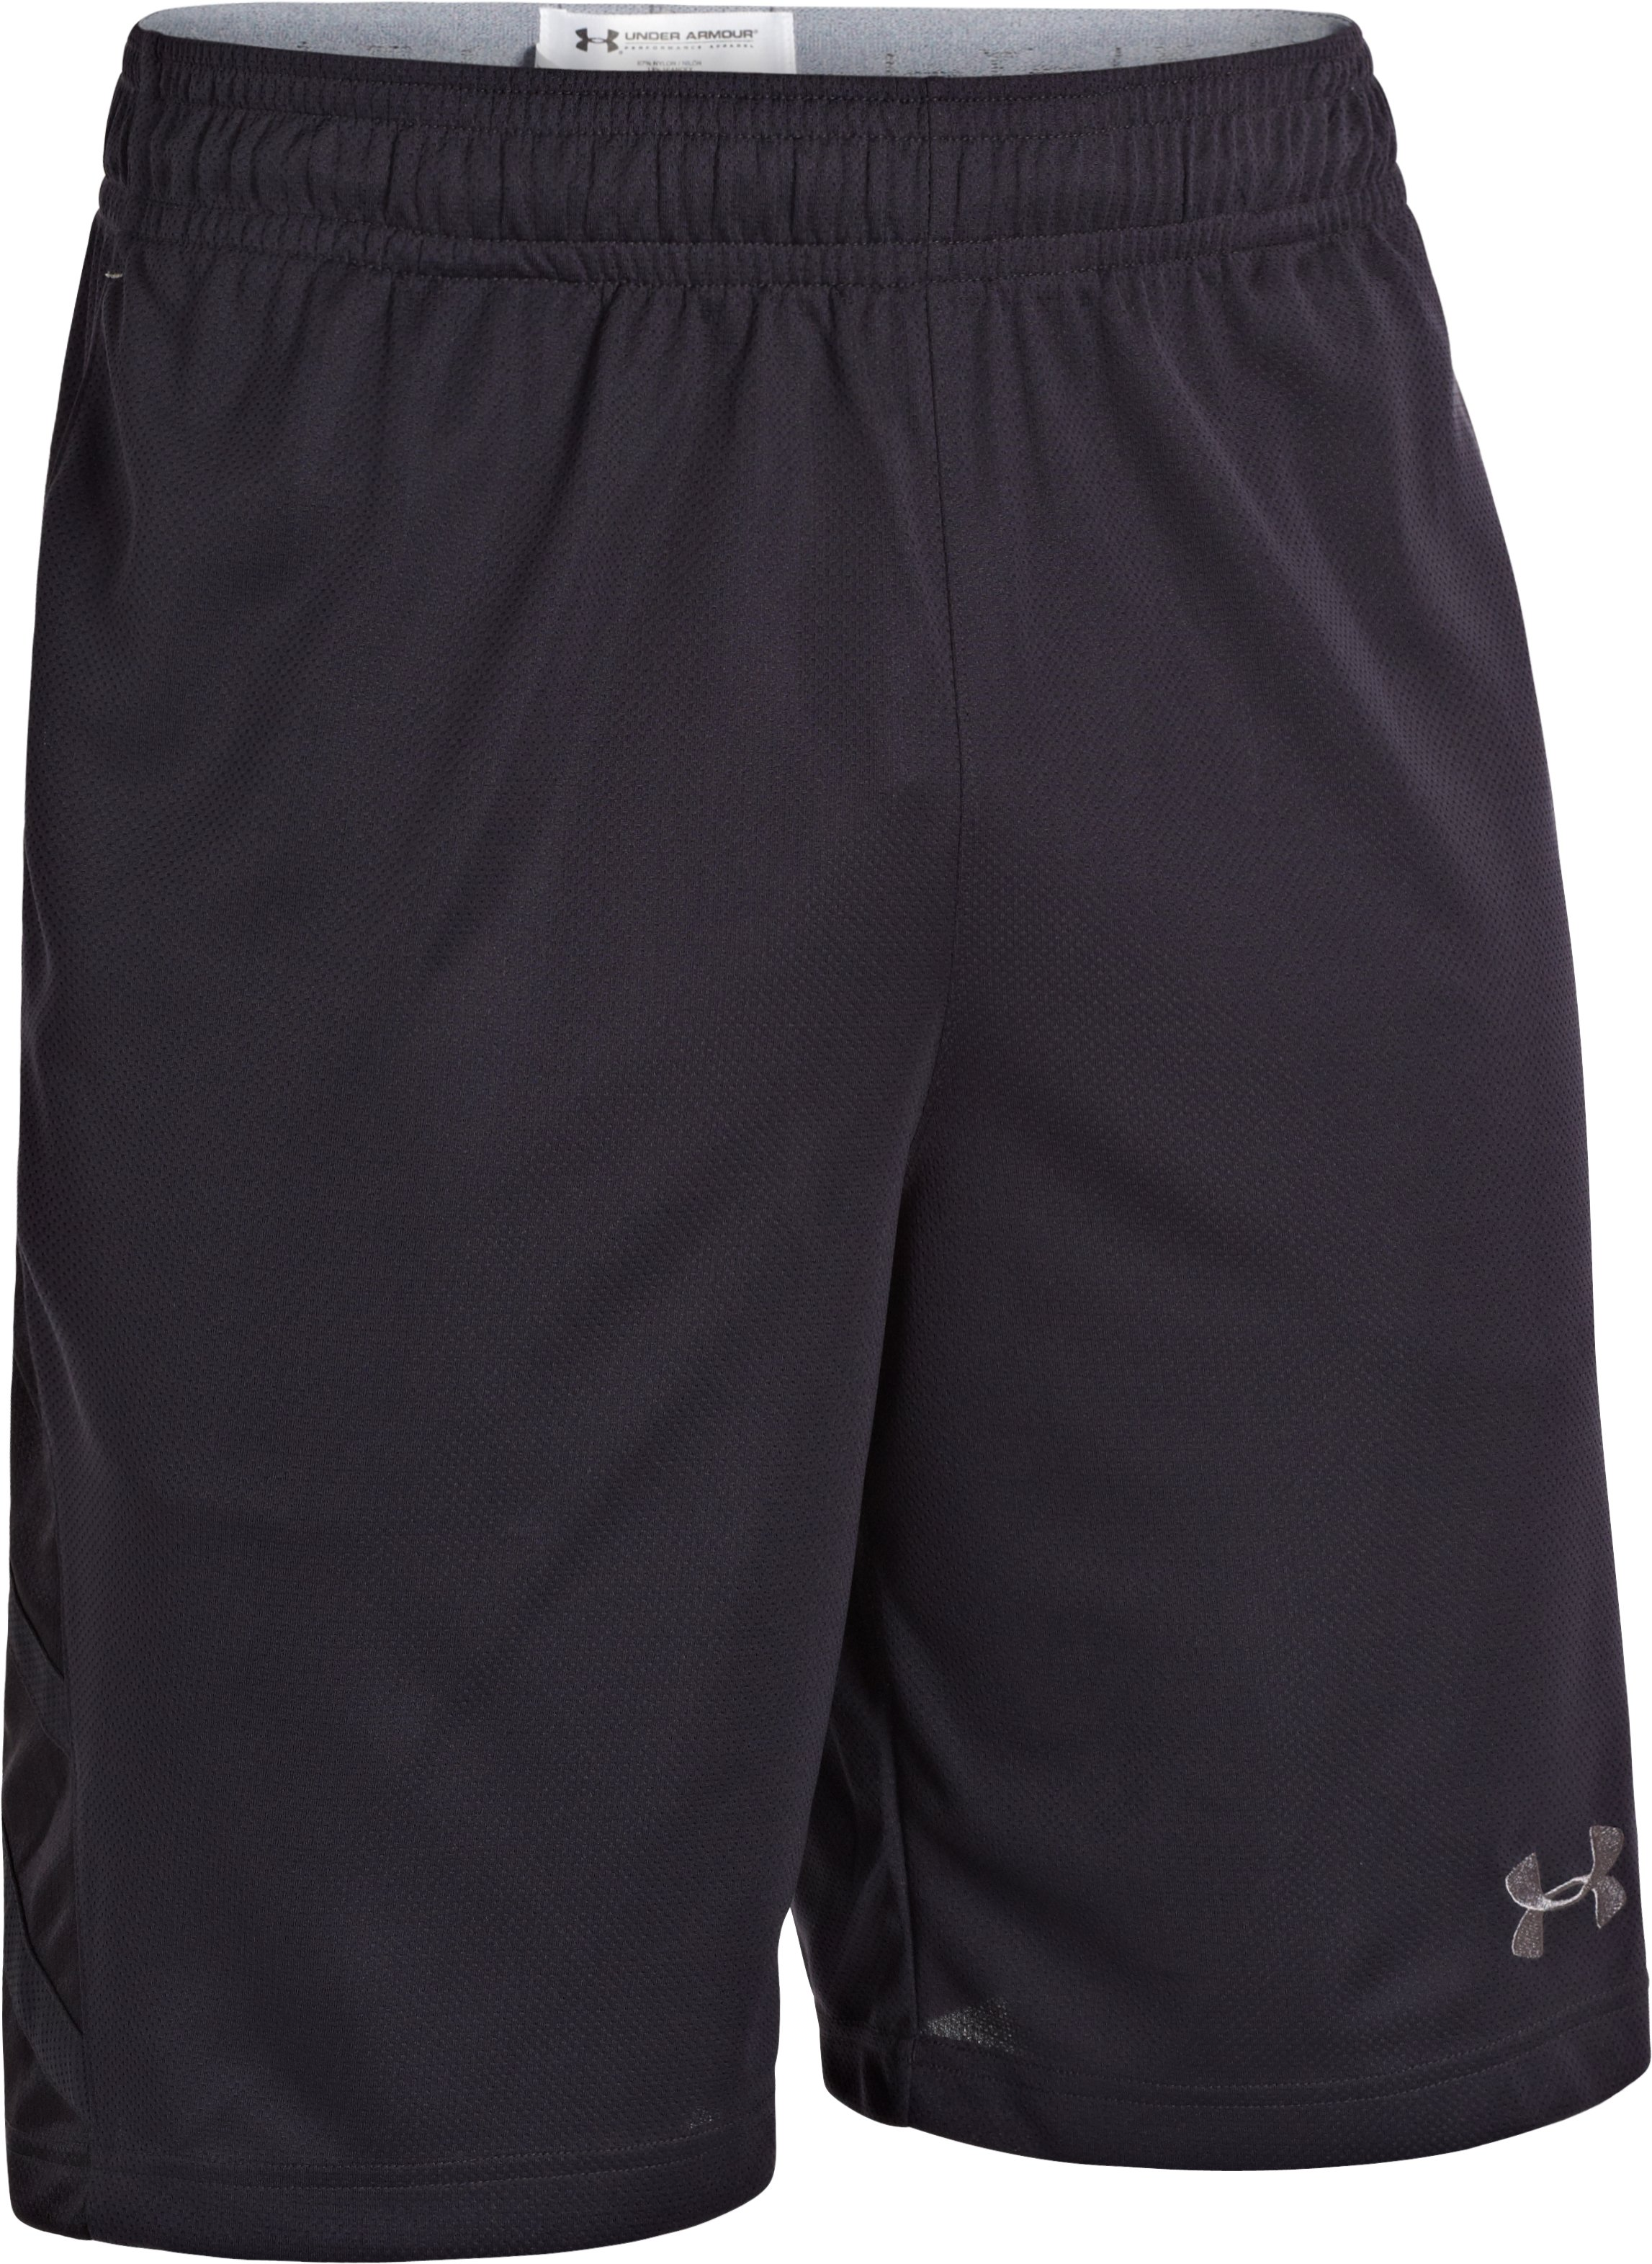 Men's UA Big Timin Shorts, Black